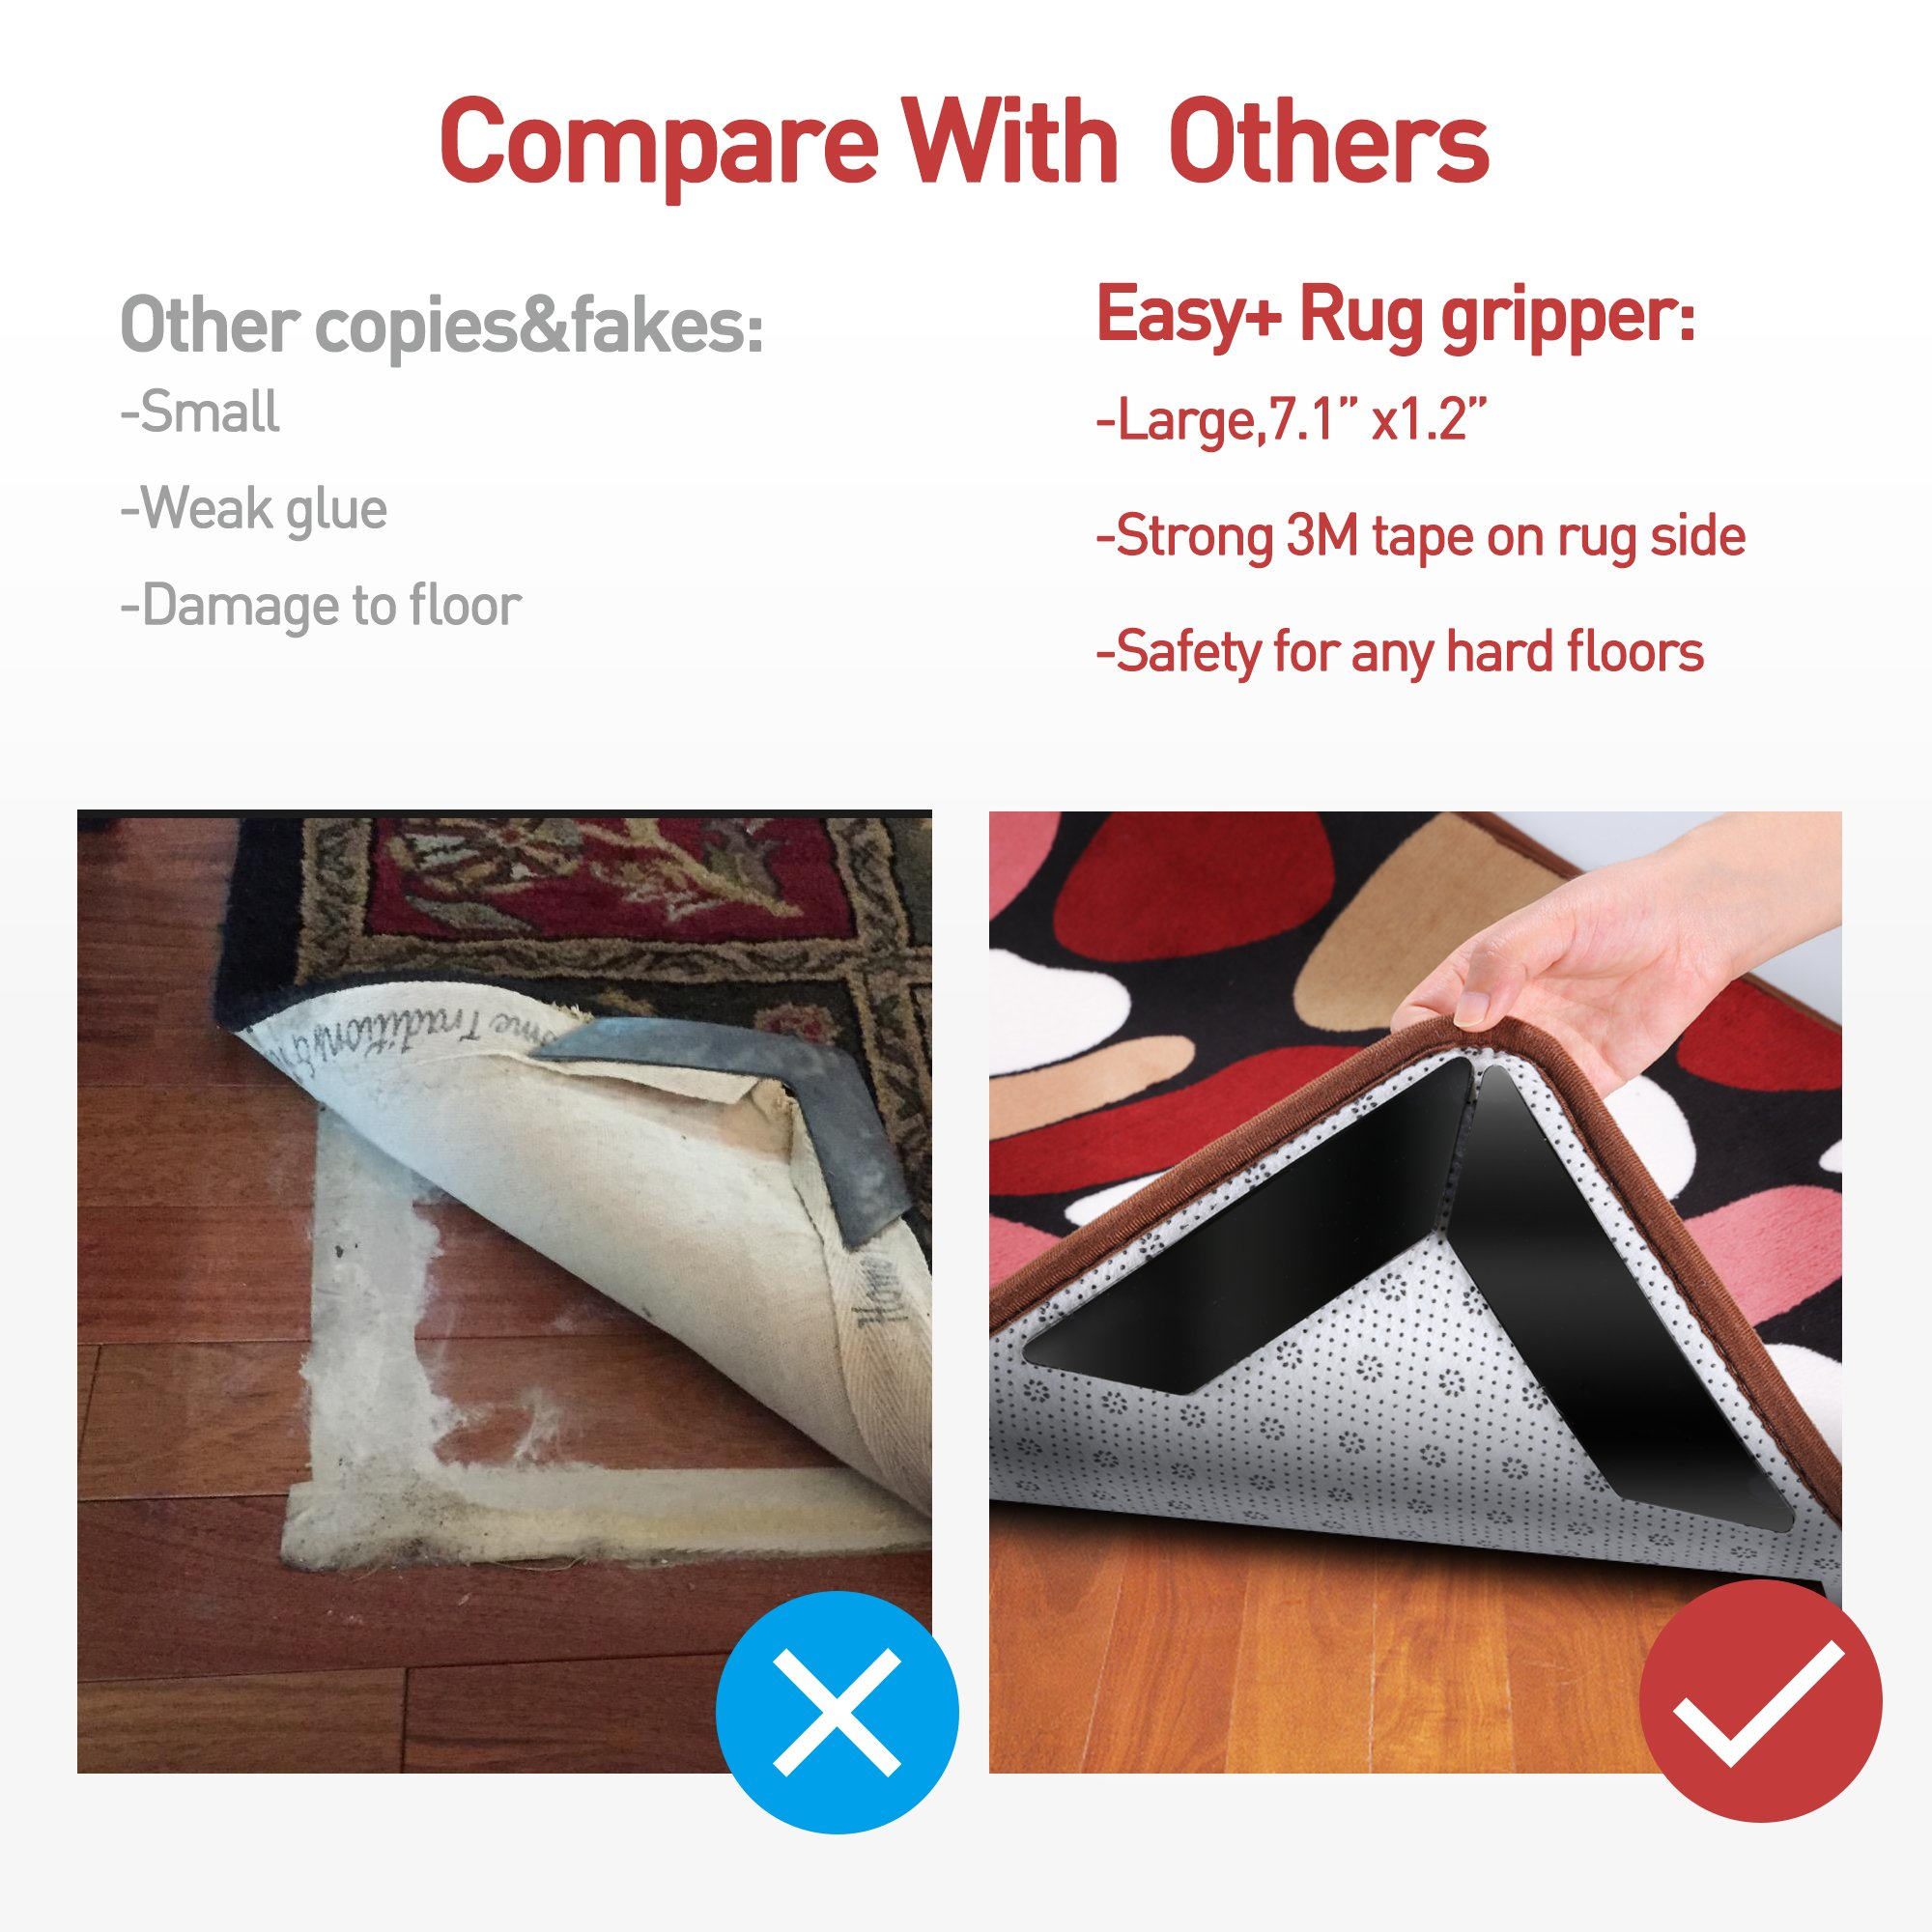 FaayFian 8pcs Large Anti Curling Rug Gripper, Keeps Your Rug in Place & Makes Corners Flat, Carpet Gripper with Renewable Gripper Tape, Ideal Anti Slip Rug Pad for Your Rugs by FaayFian (Image #4)